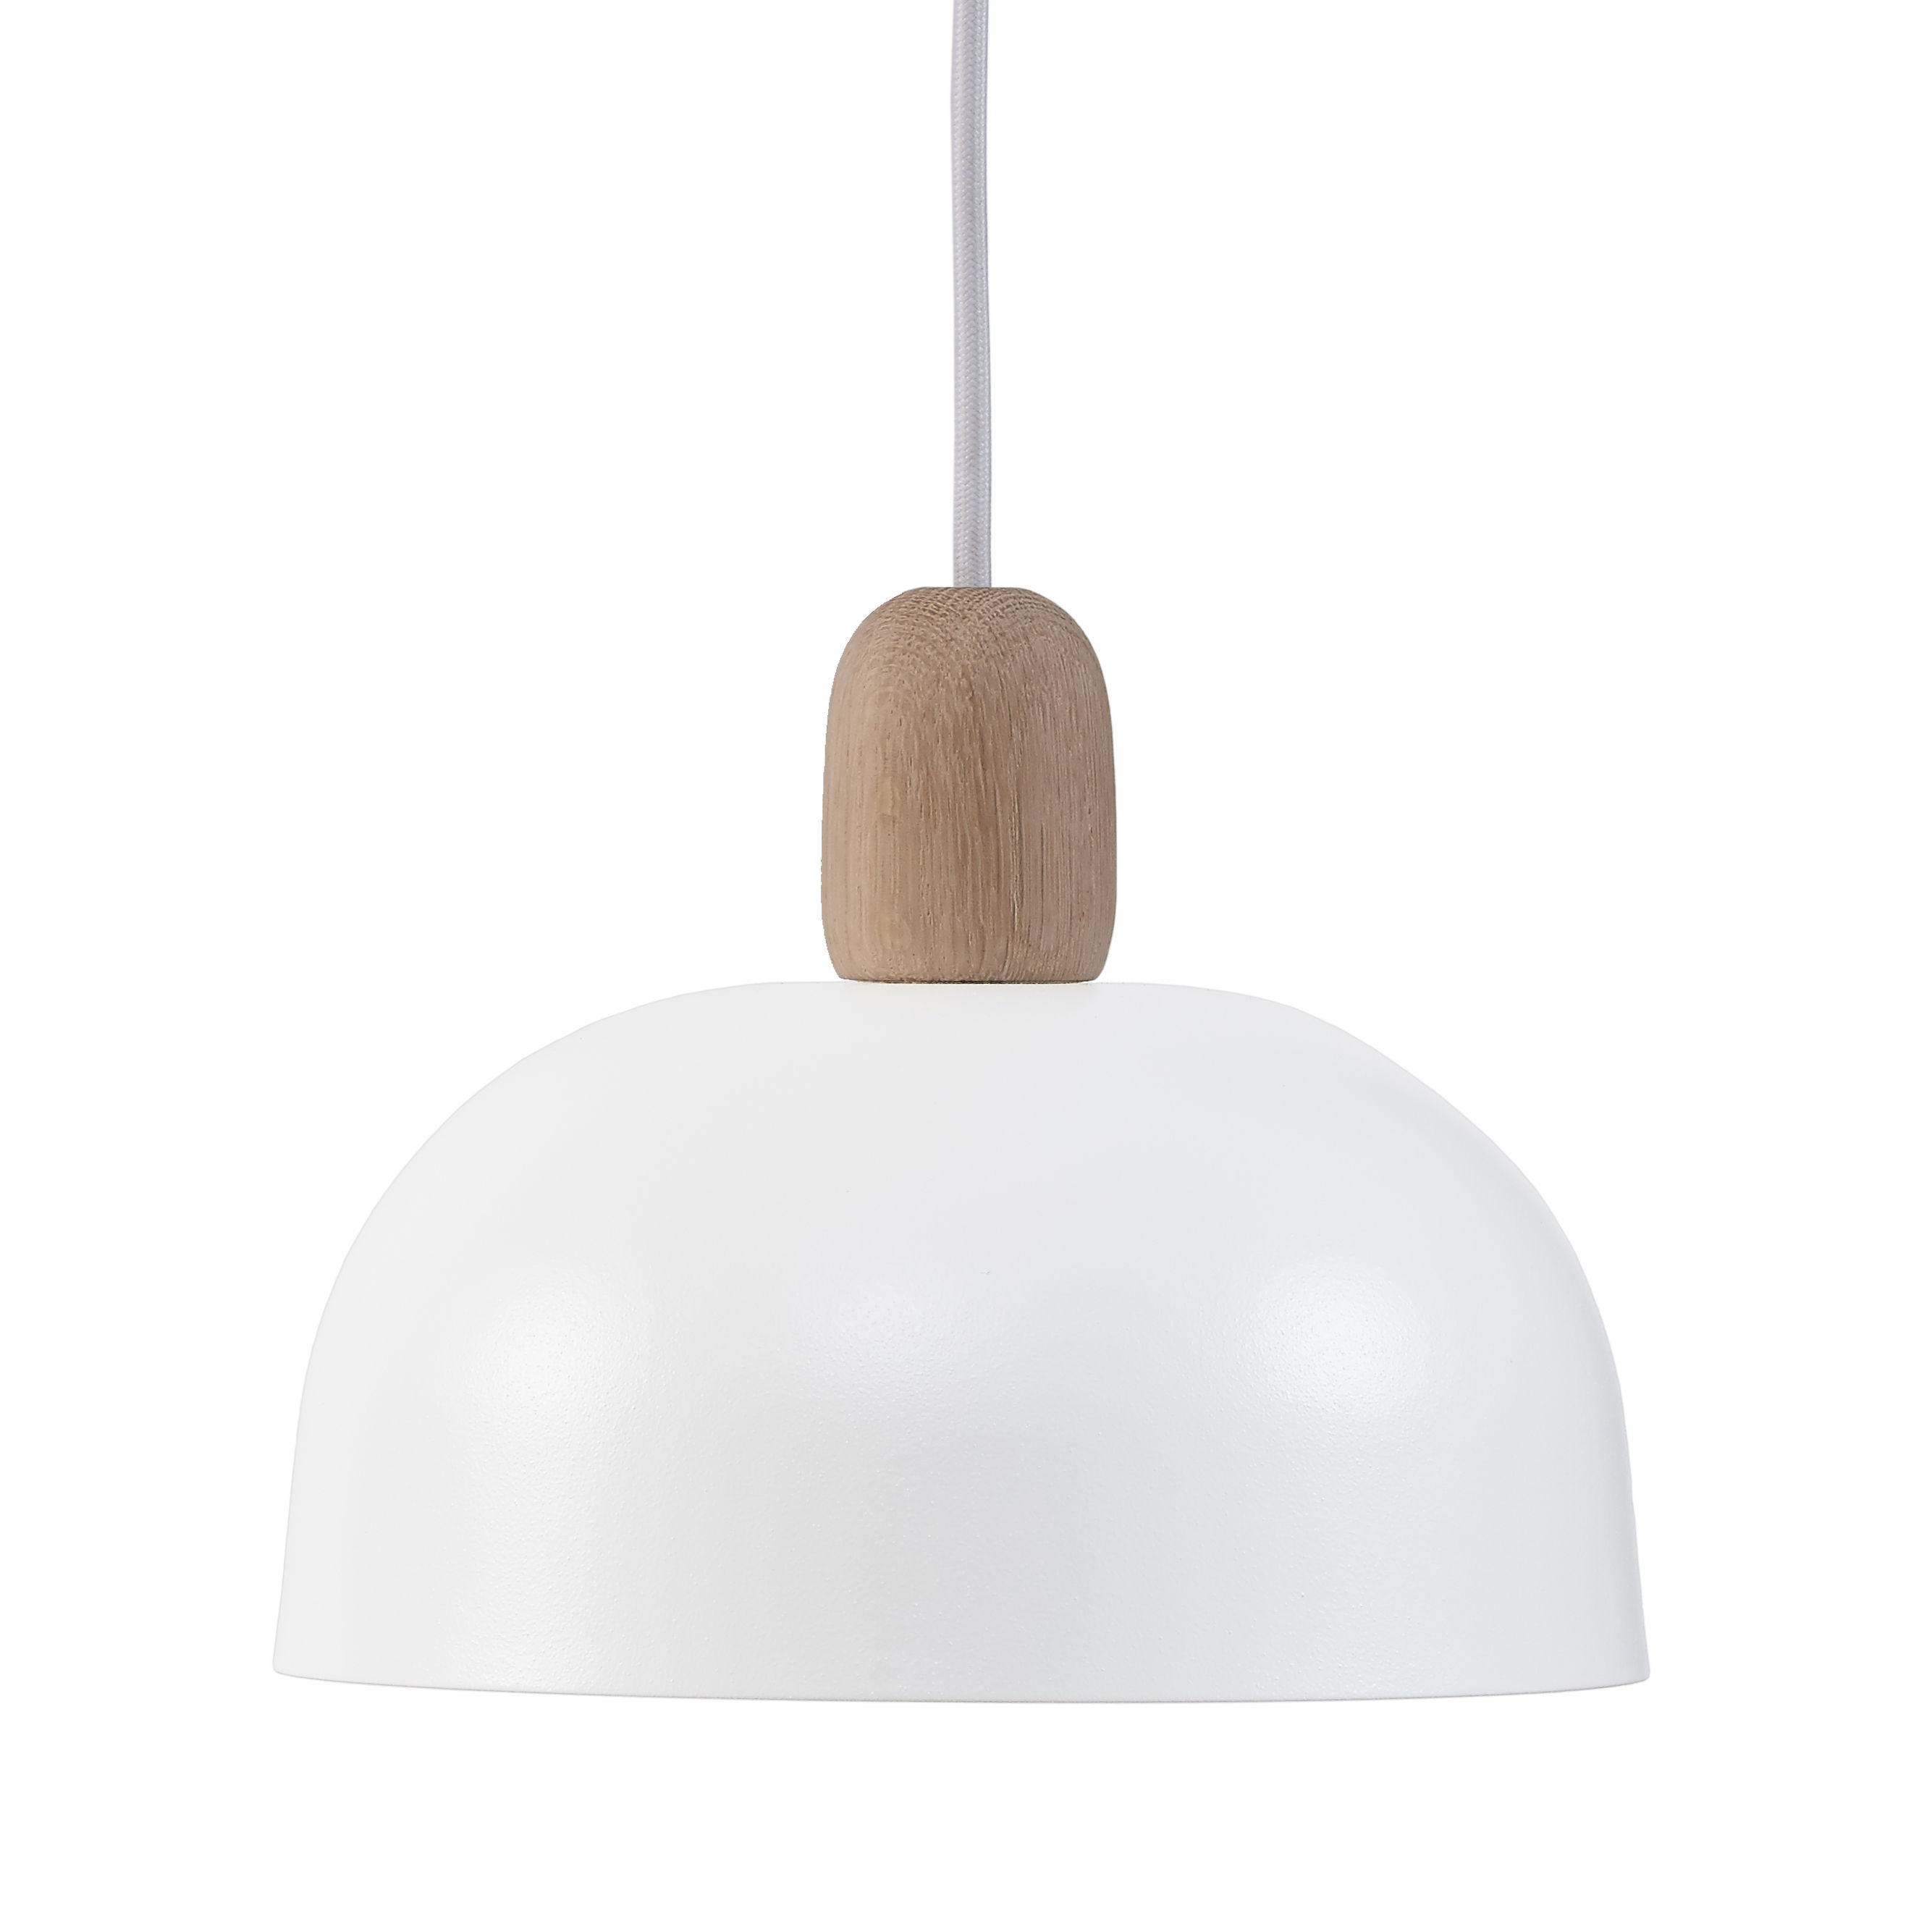 Lighting - Pendant Lighting - Nina Pendant - Oak and metal - Ø 23 cm by Hartô - White & oak - Lacquered metal, Solid oak